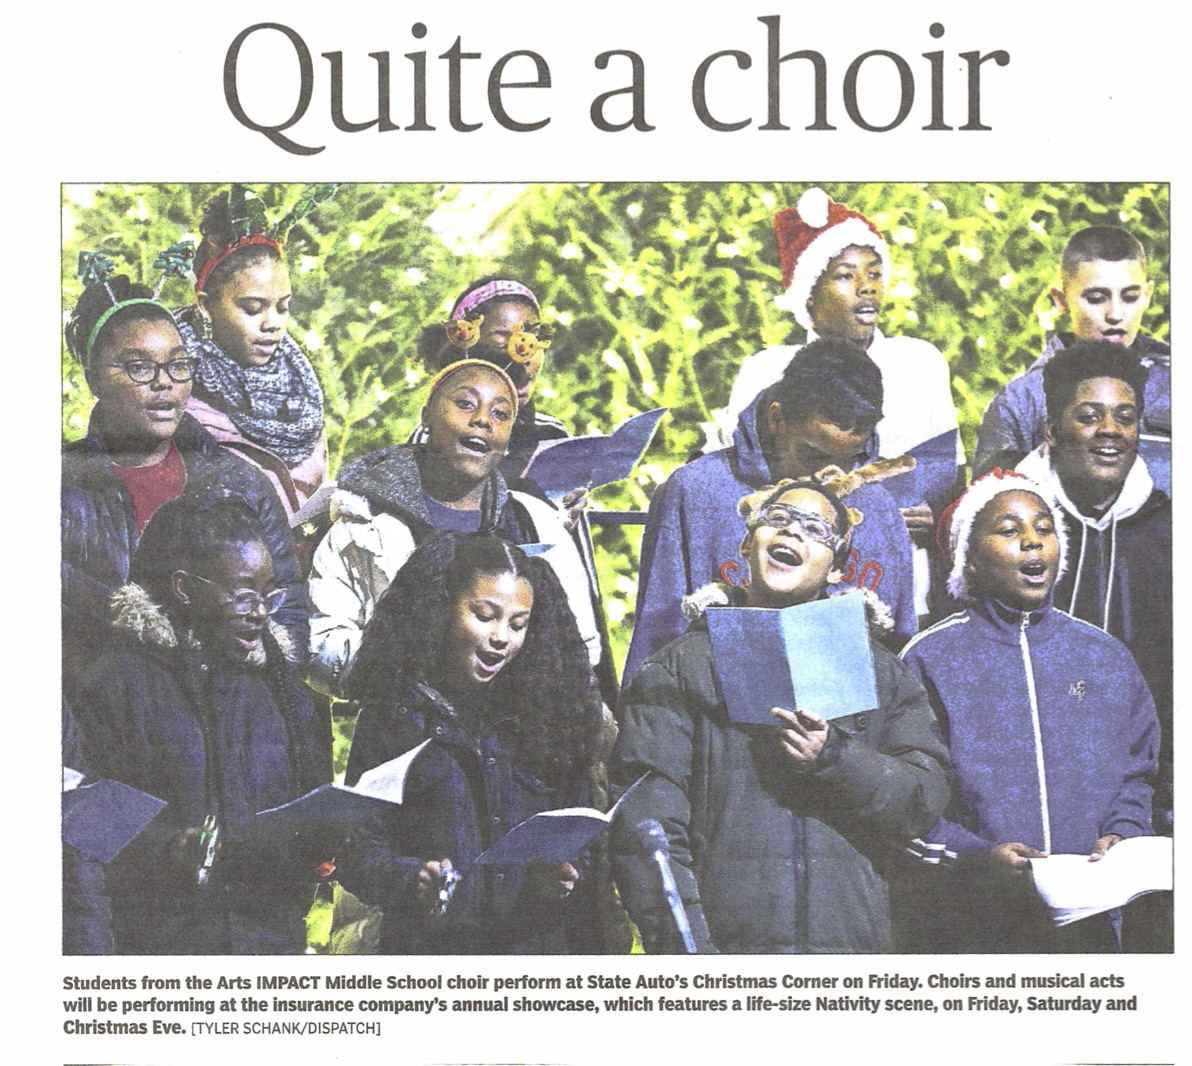 AIMS choir news article _000414.jpg